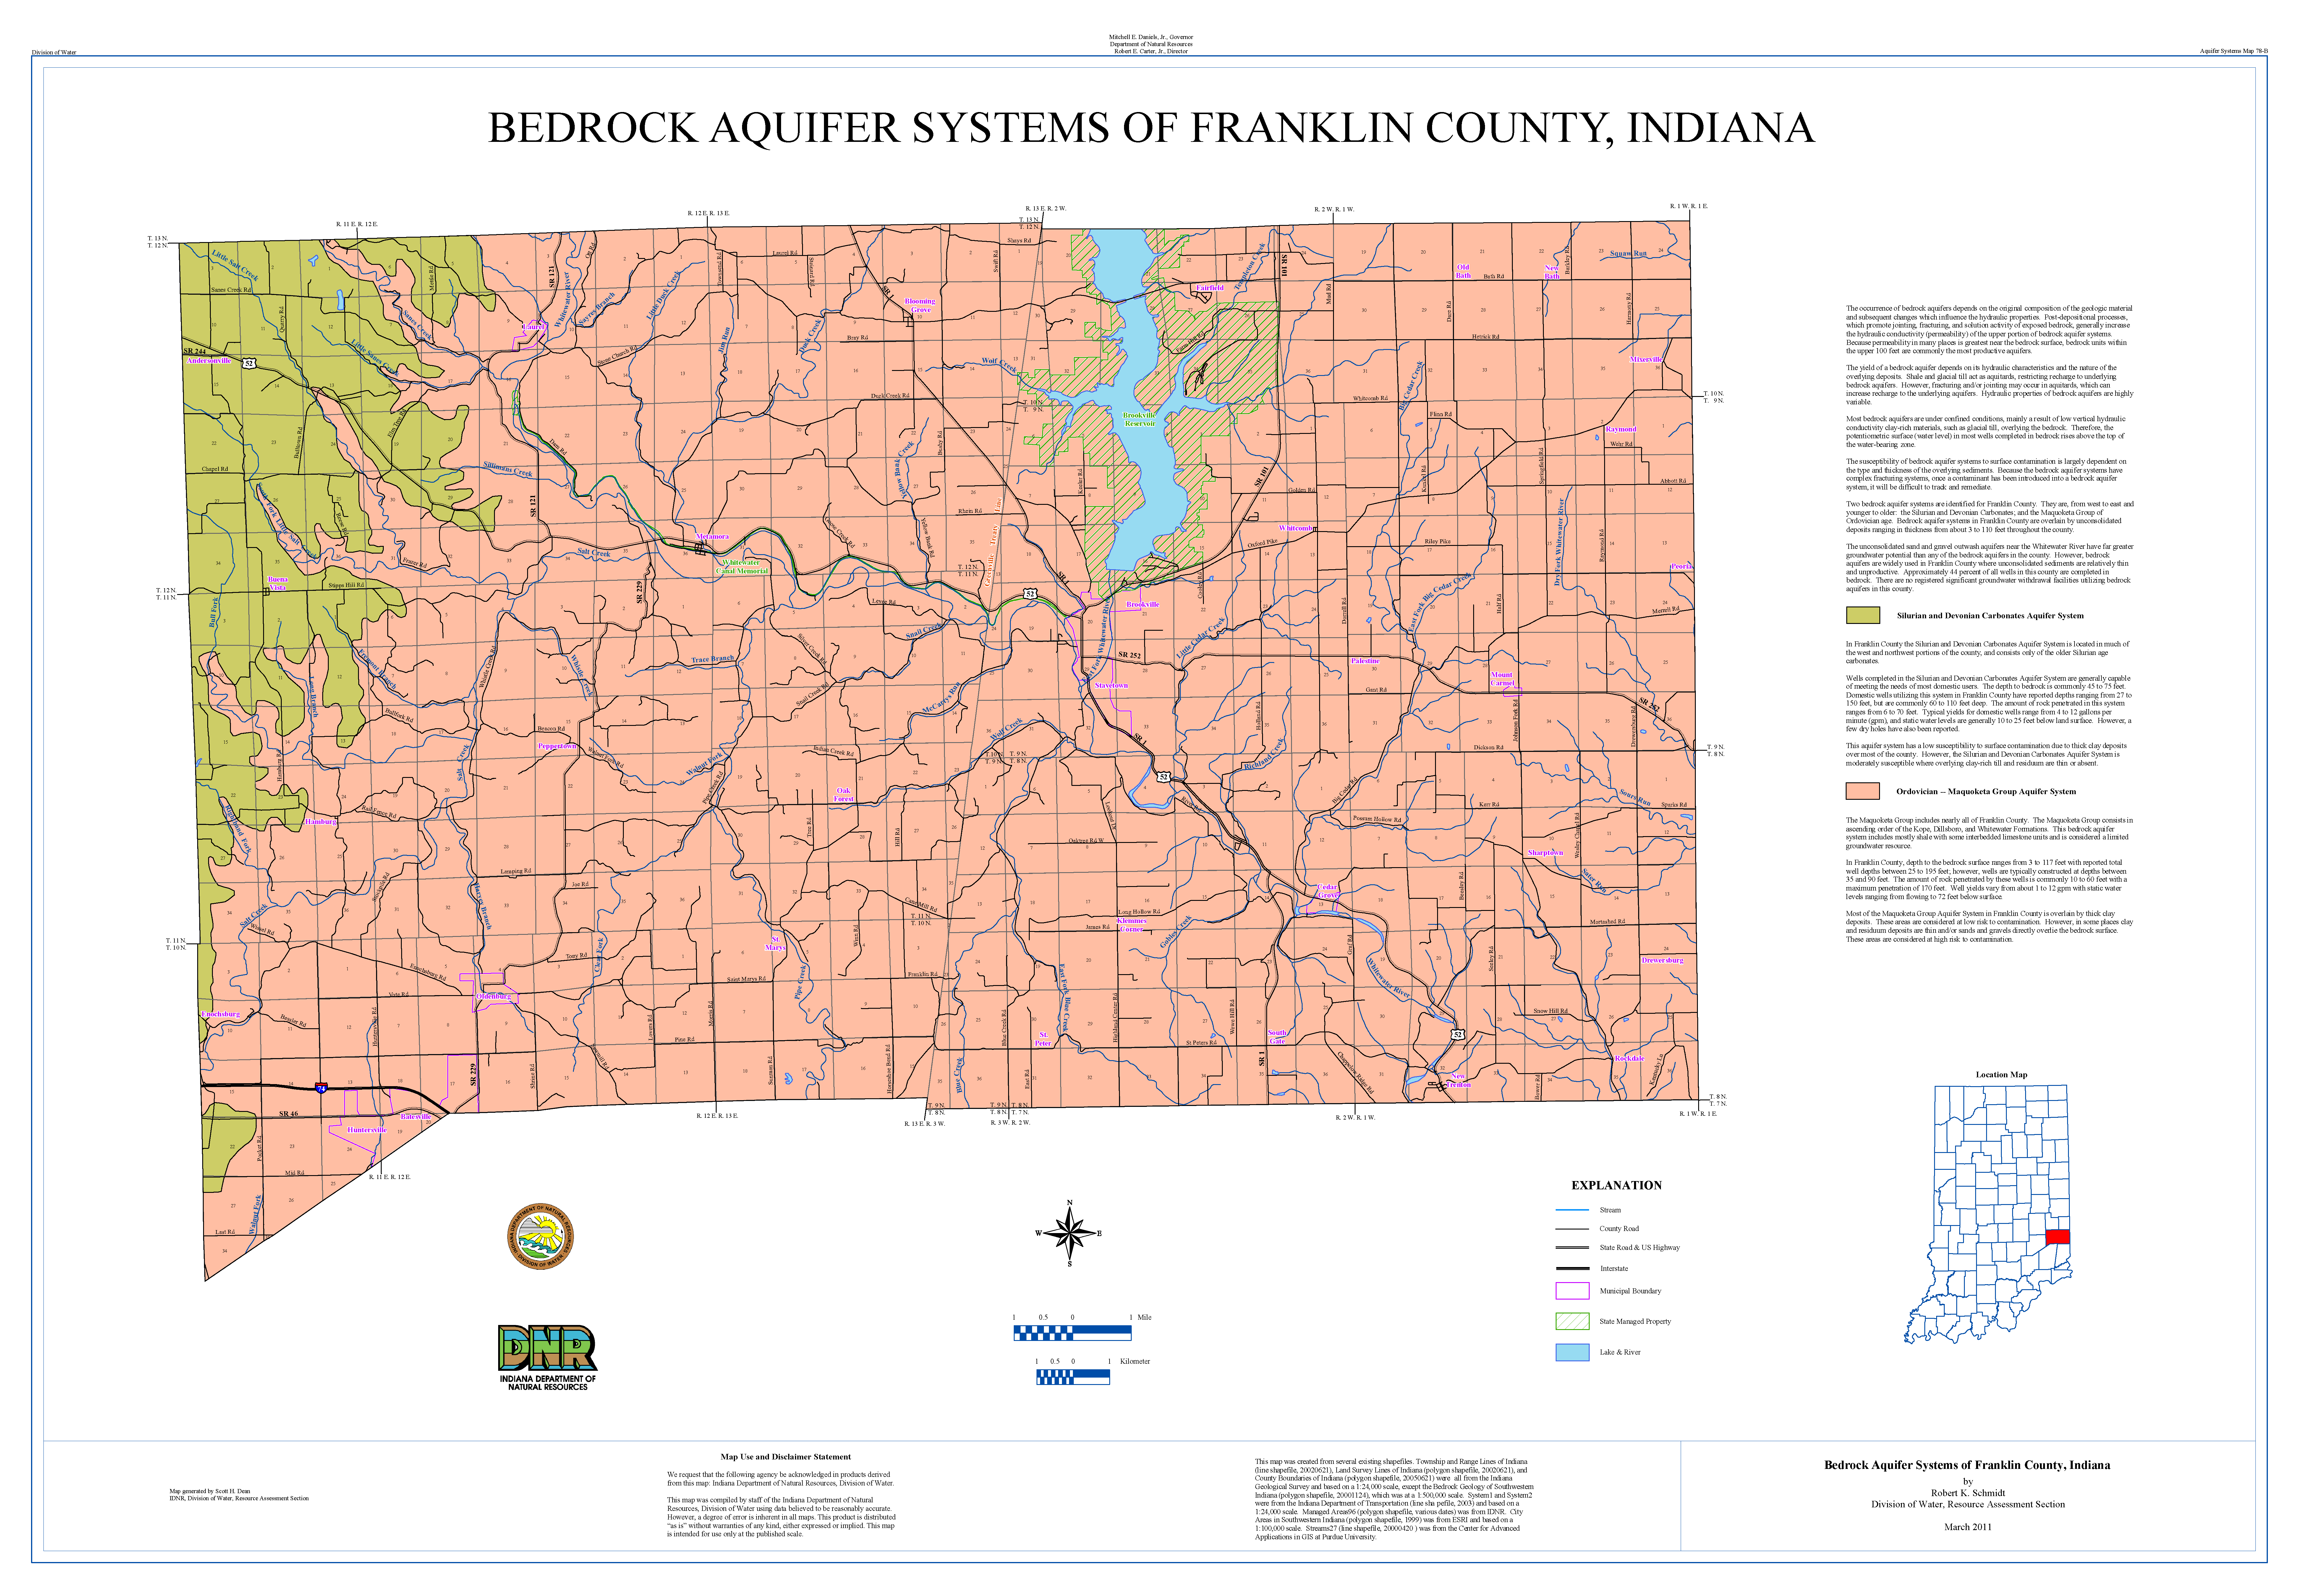 Dnr Aquifer Systems Maps 78 A And 78 B Unconsolidated And Bedrock